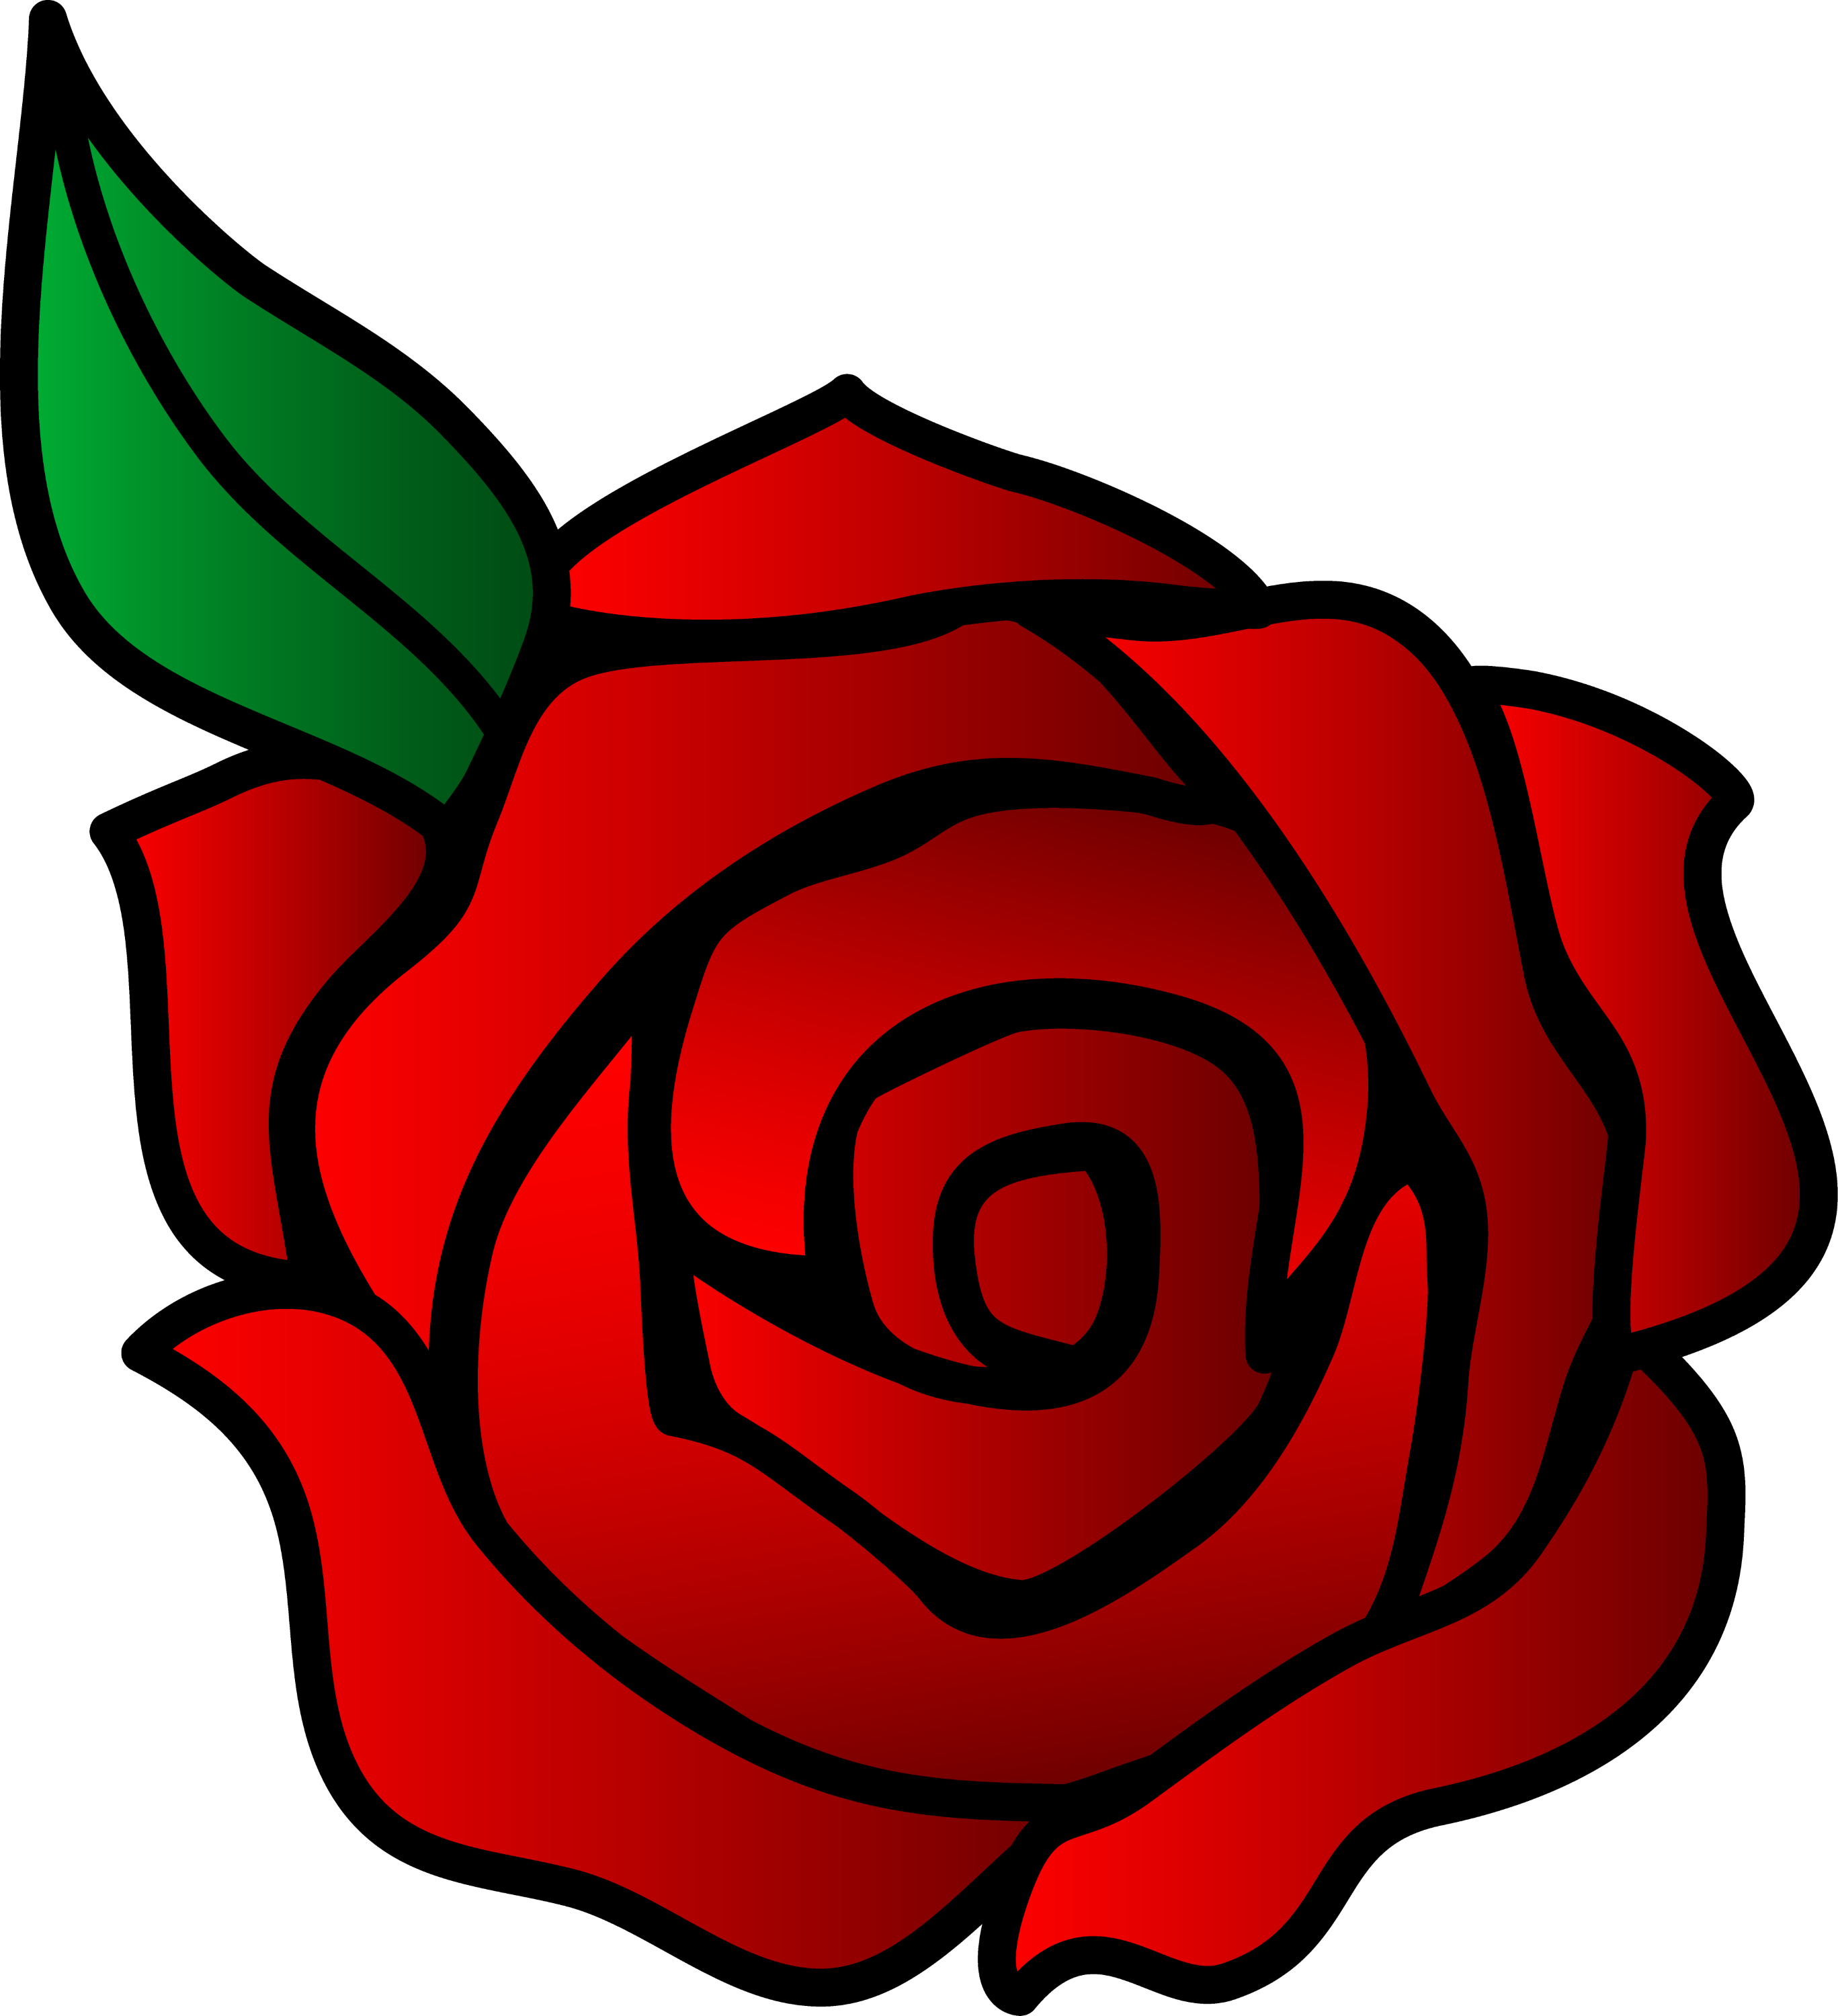 red roses clipart - photo #29